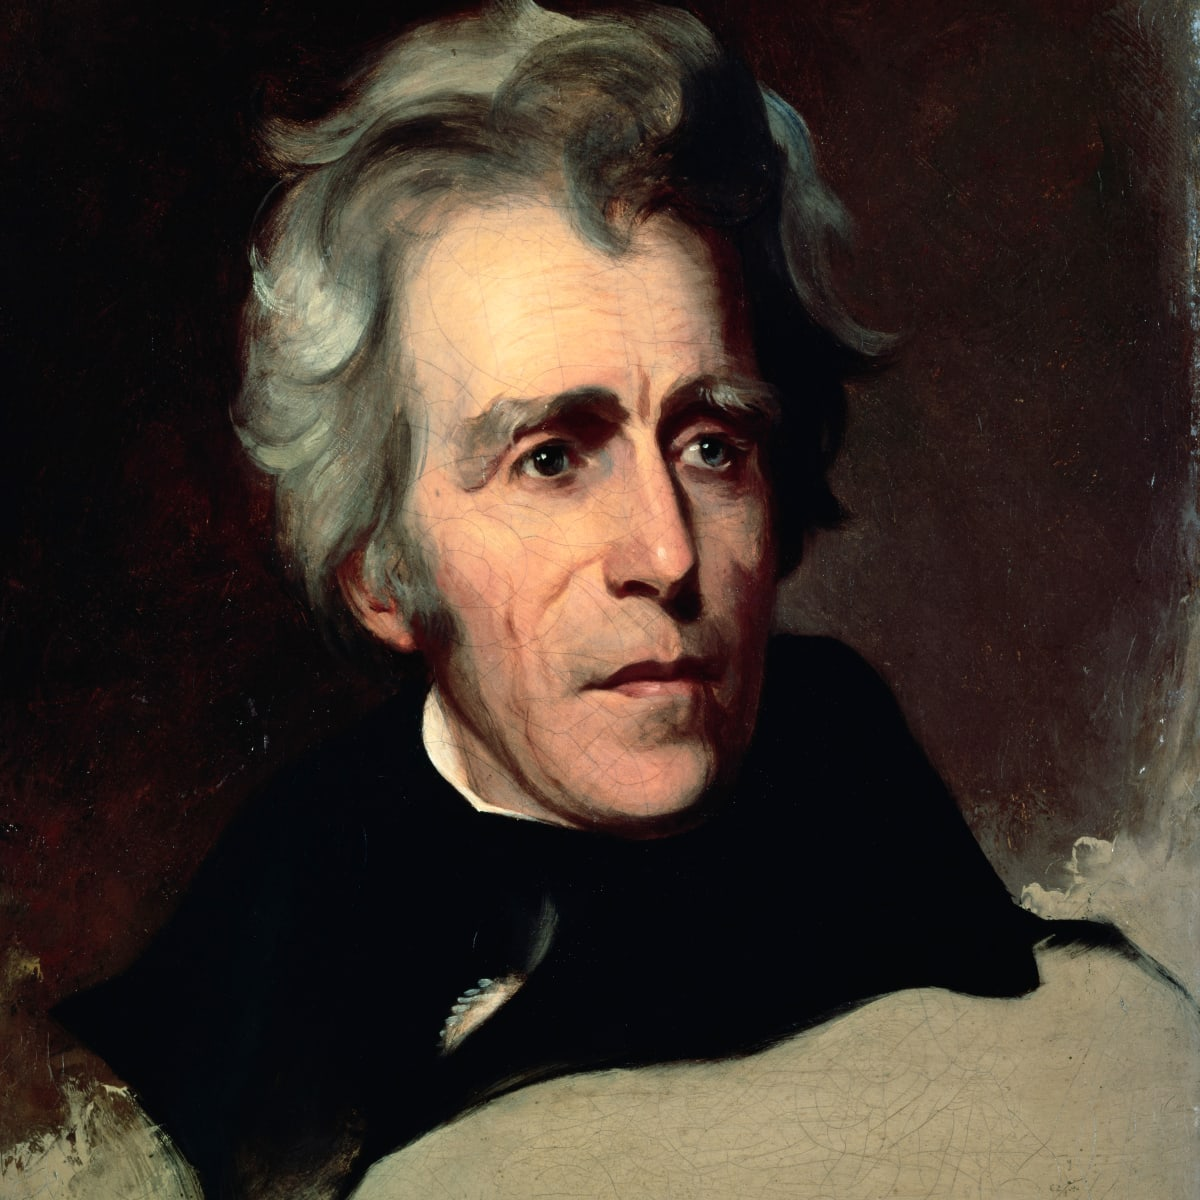 10 Things You May Not Know About Andrew Jackson - HISTORY